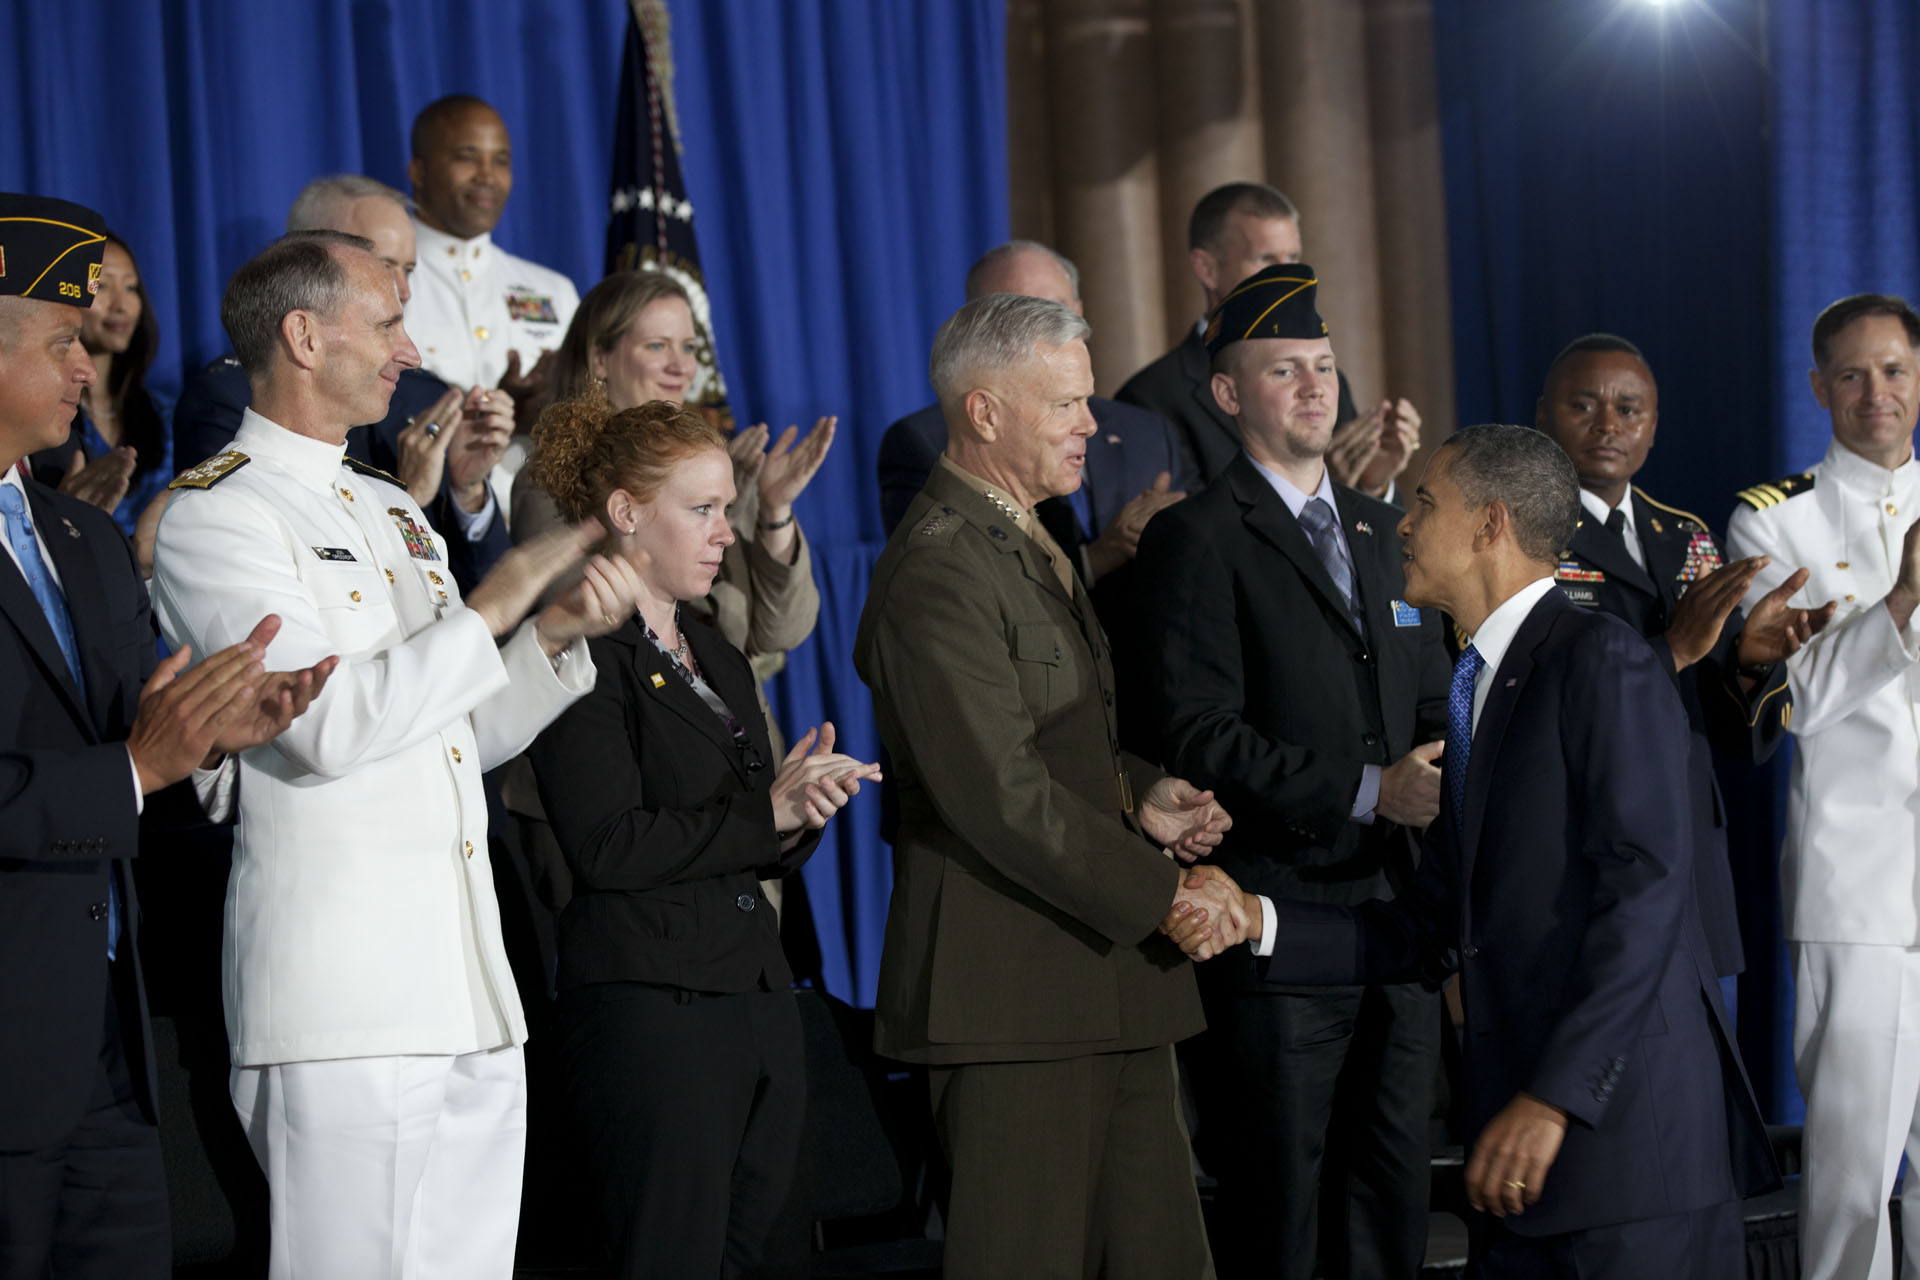 President Barack Obama Shakes Hands after Announcing a Jobs Initiative for Post 9-11 Veterans